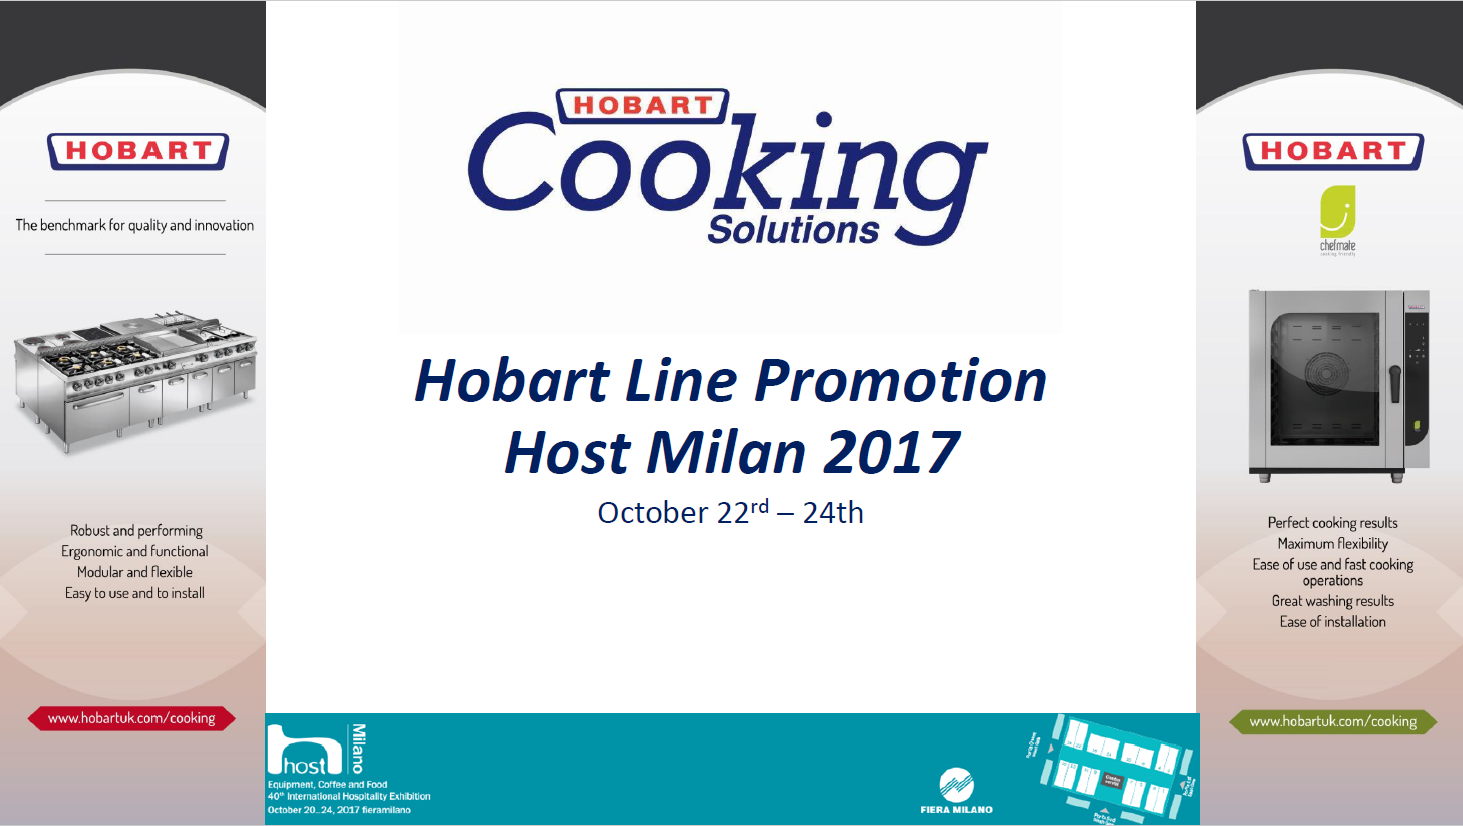 Hobart Cooking Solutions Partner Promotion